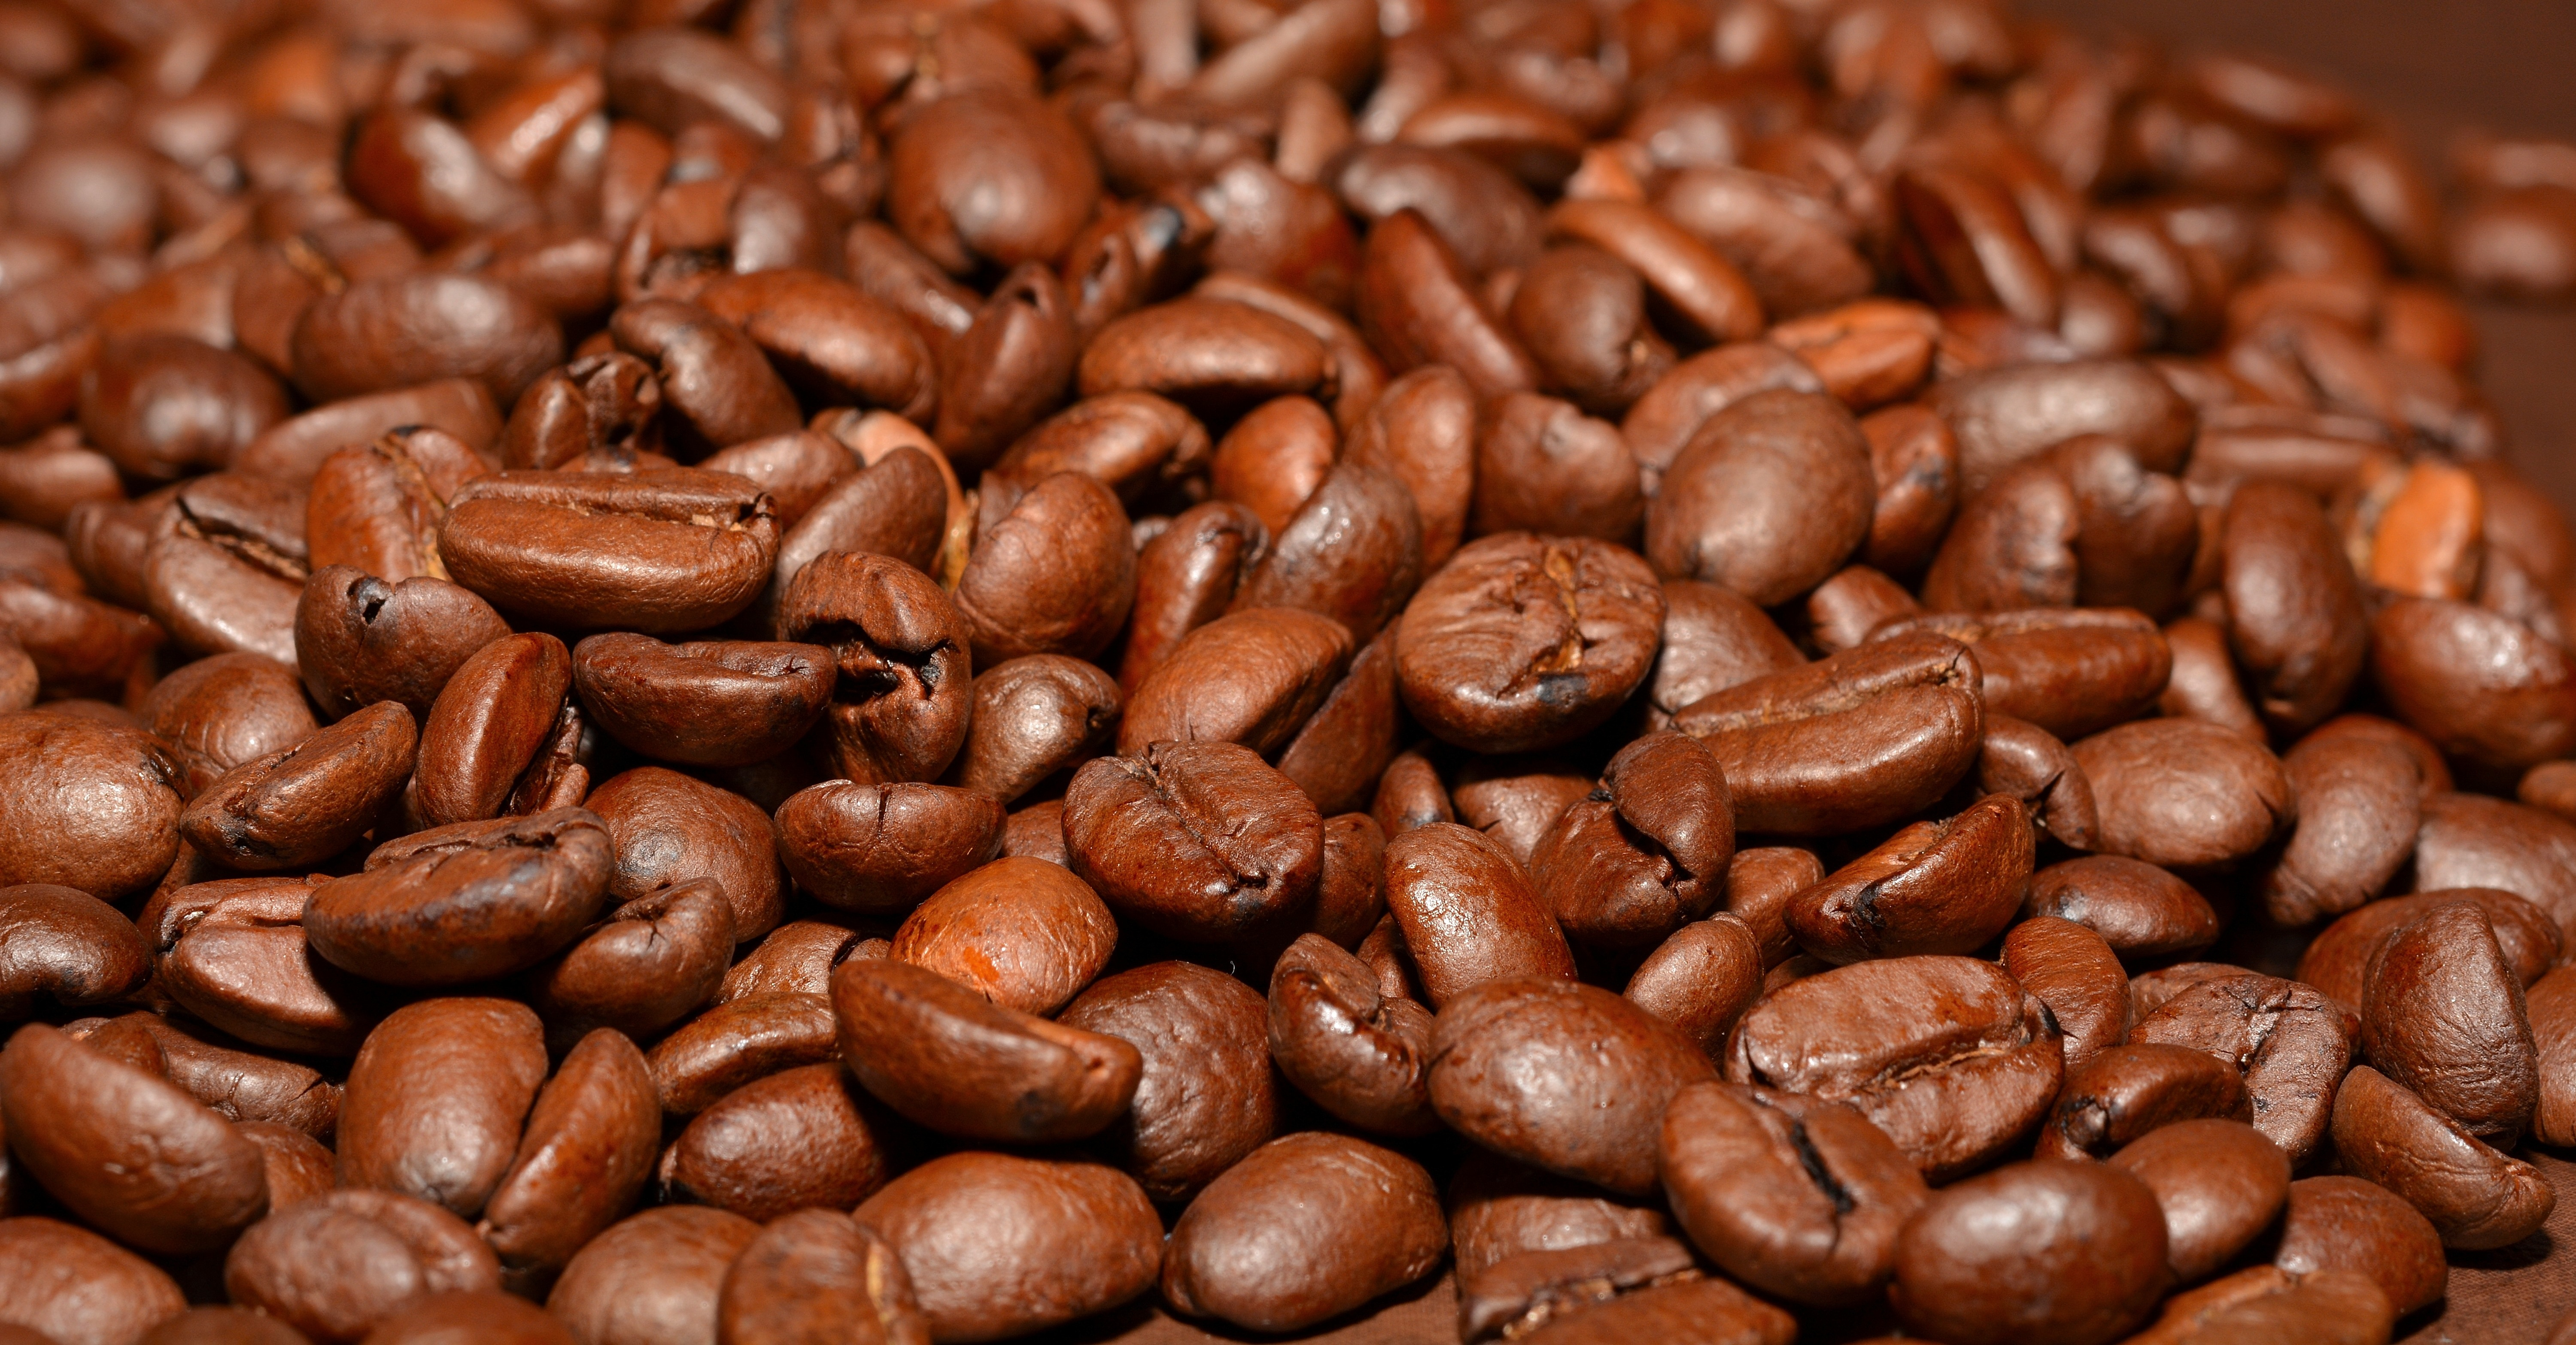 Seeds, Nature, Seed, Coffee images, Brown, HQ Photo